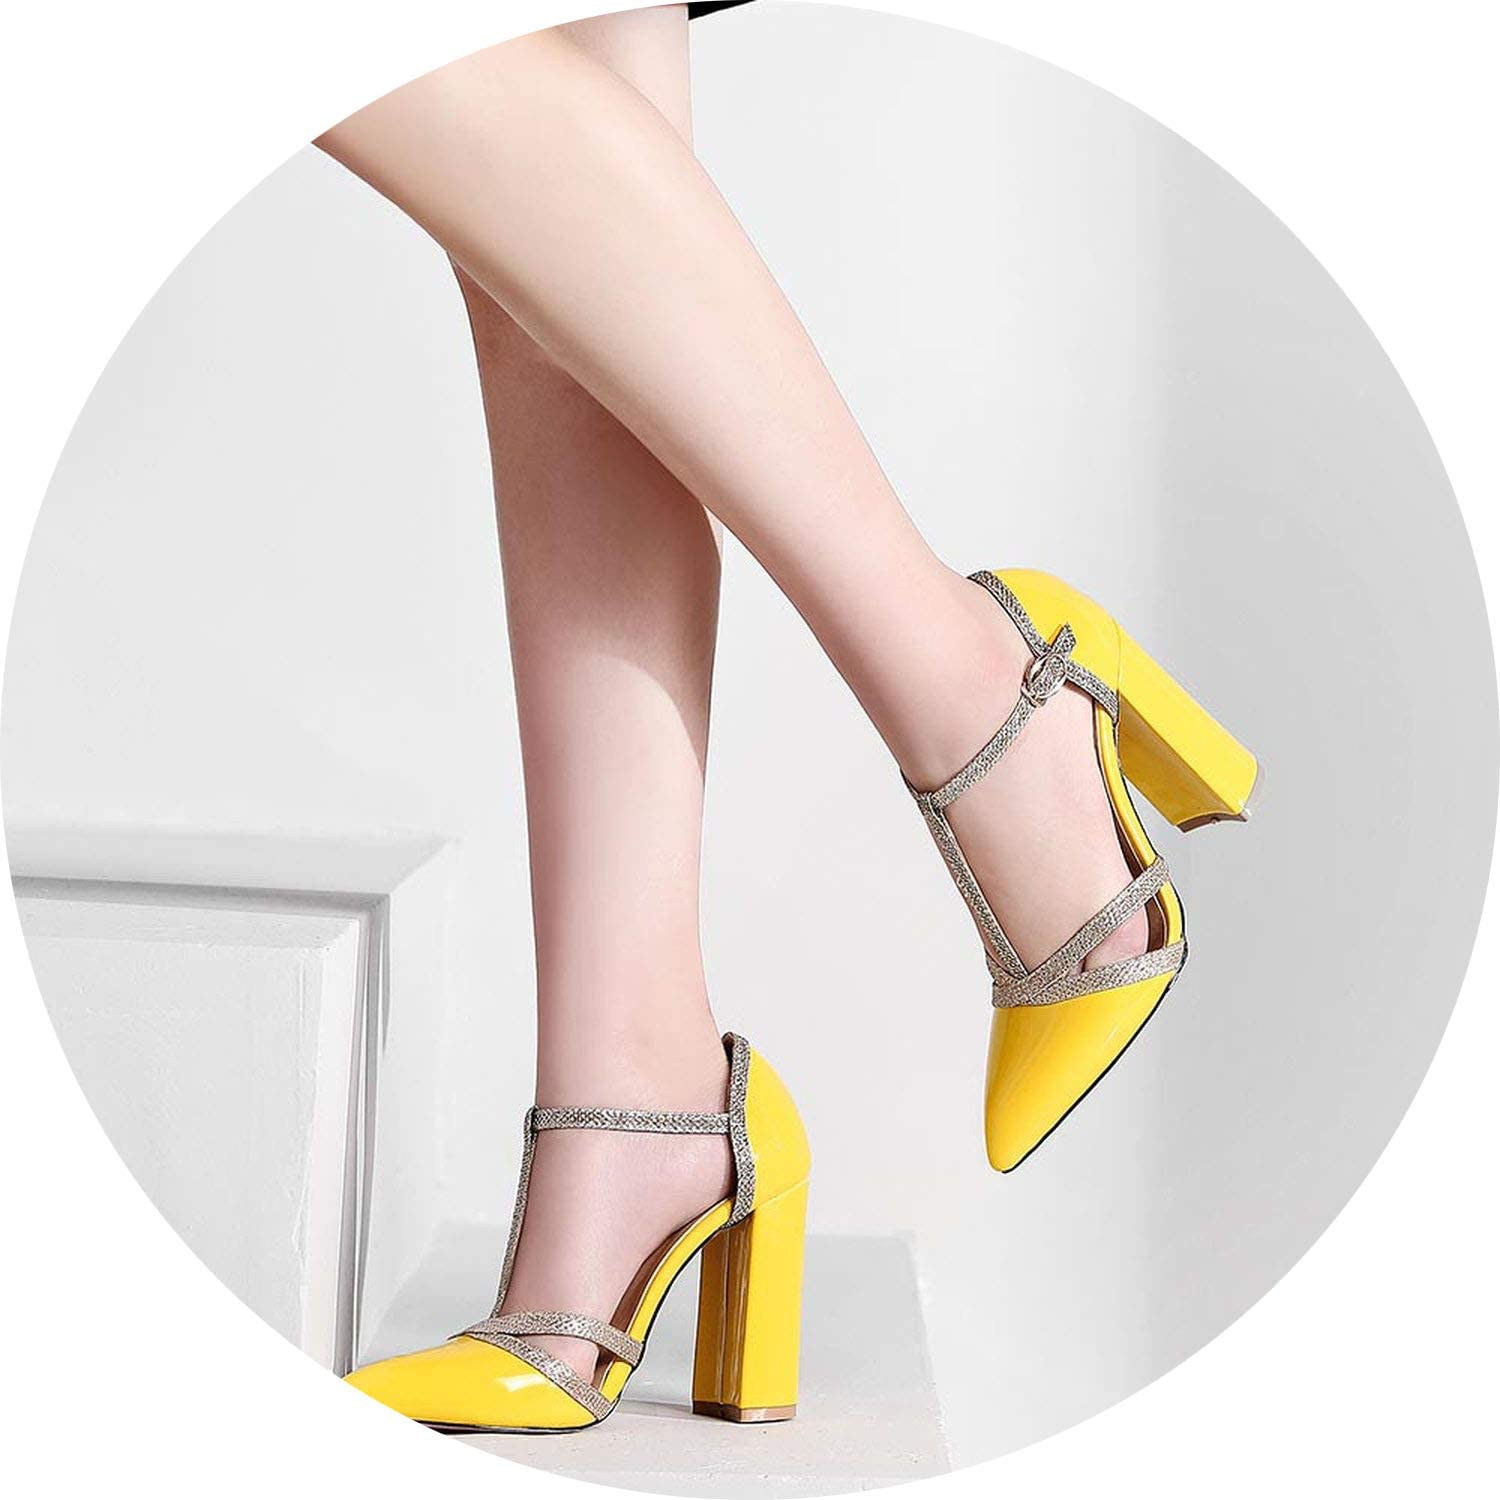 Get-in Patent Leather Women Pumps Spring shoes T-Strap Pointed Wedding Pumps Sexy Cut Outs Thick Heel Dress Party shoes